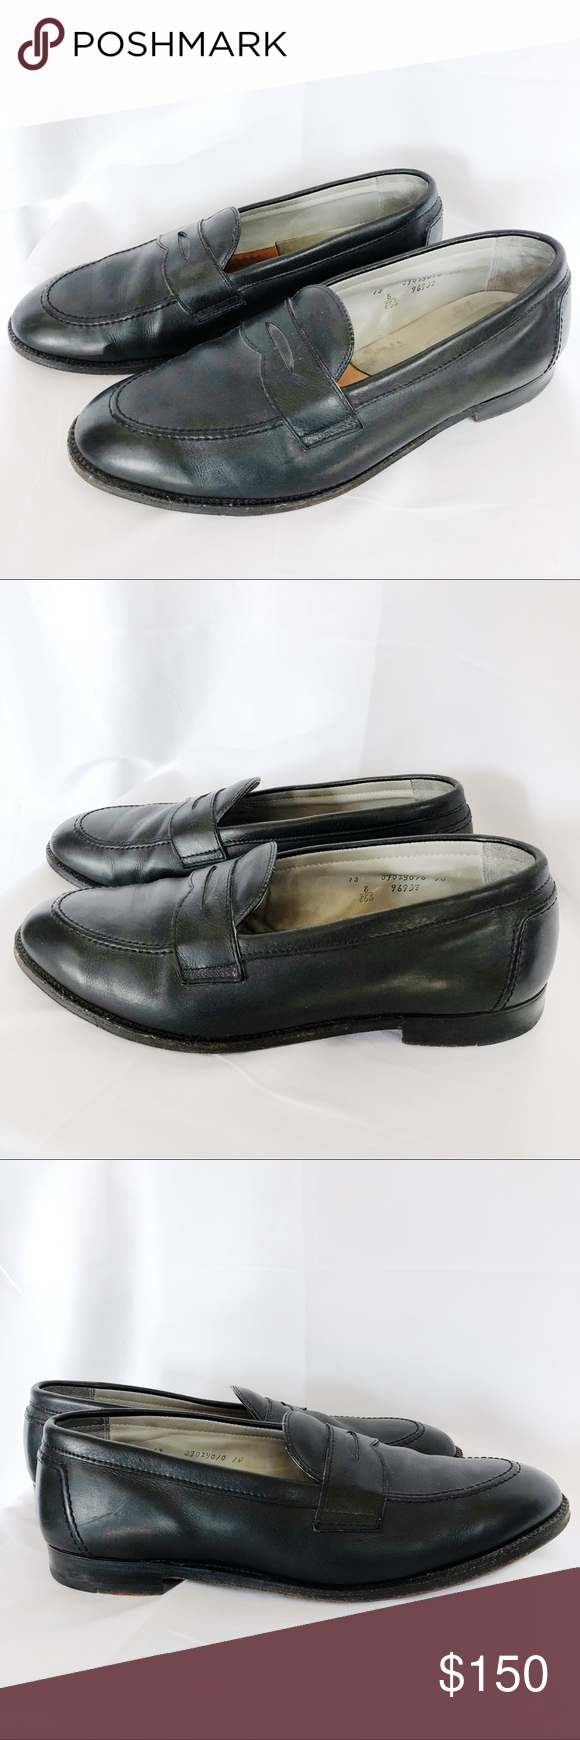 51243c62296 Alden Penny Loafer 9695F Flex Welt Black Calfskin In excellent used  condition. Light wear. Well maintained. Very light wear. Width measures 4  5 8 inches.